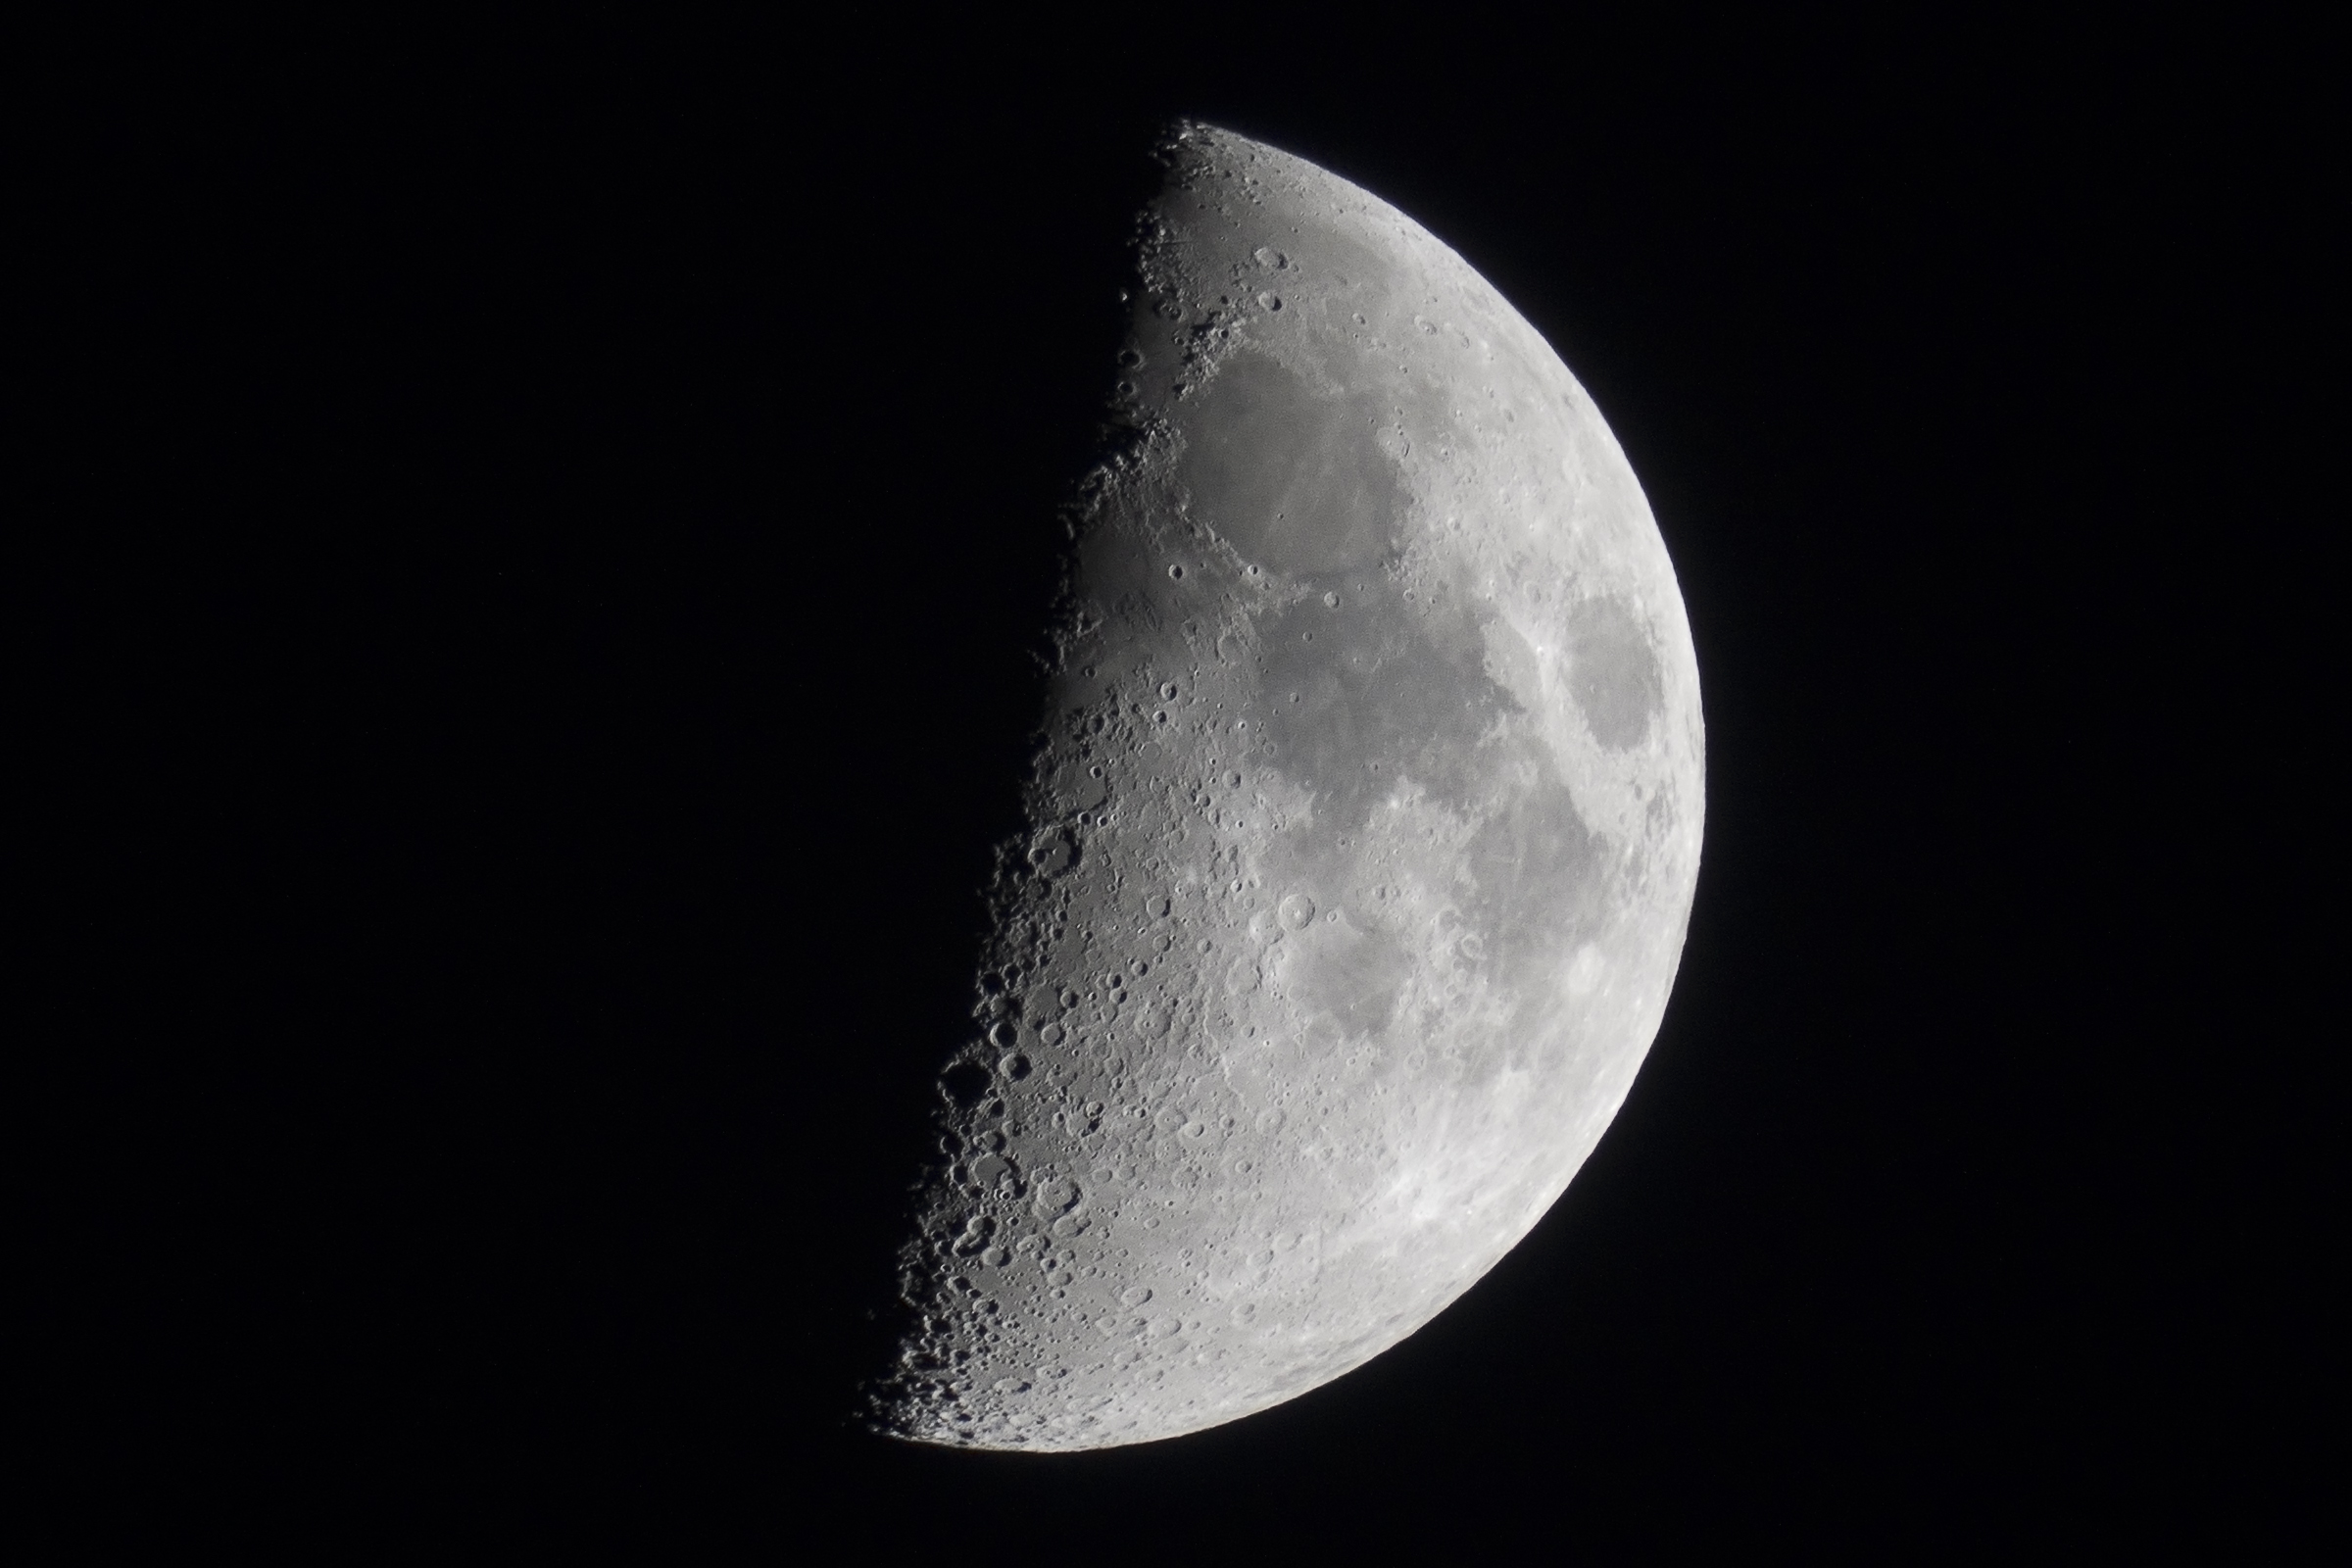 The Half Moon with the K-5IIs + Sigma 500mm F4.5 + Sigma 1 ...